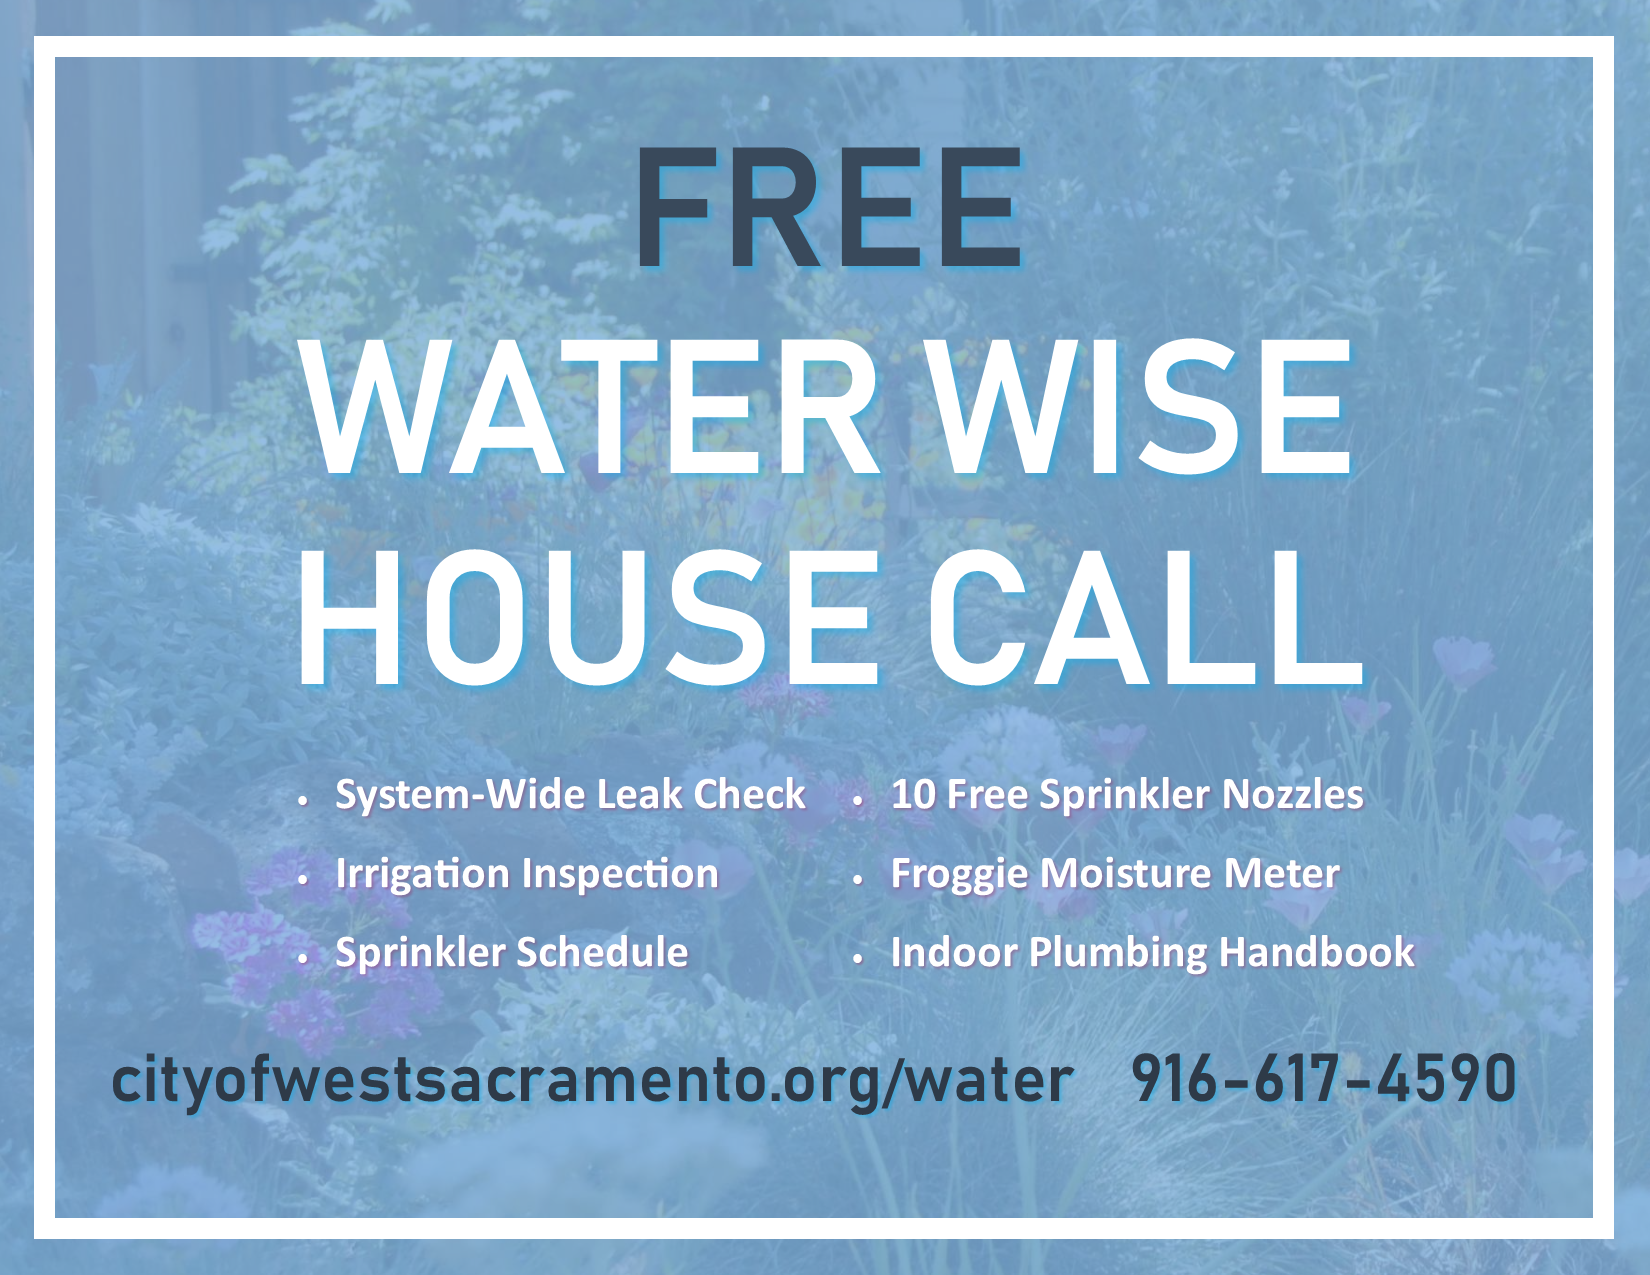 Water Wise House Call flyer